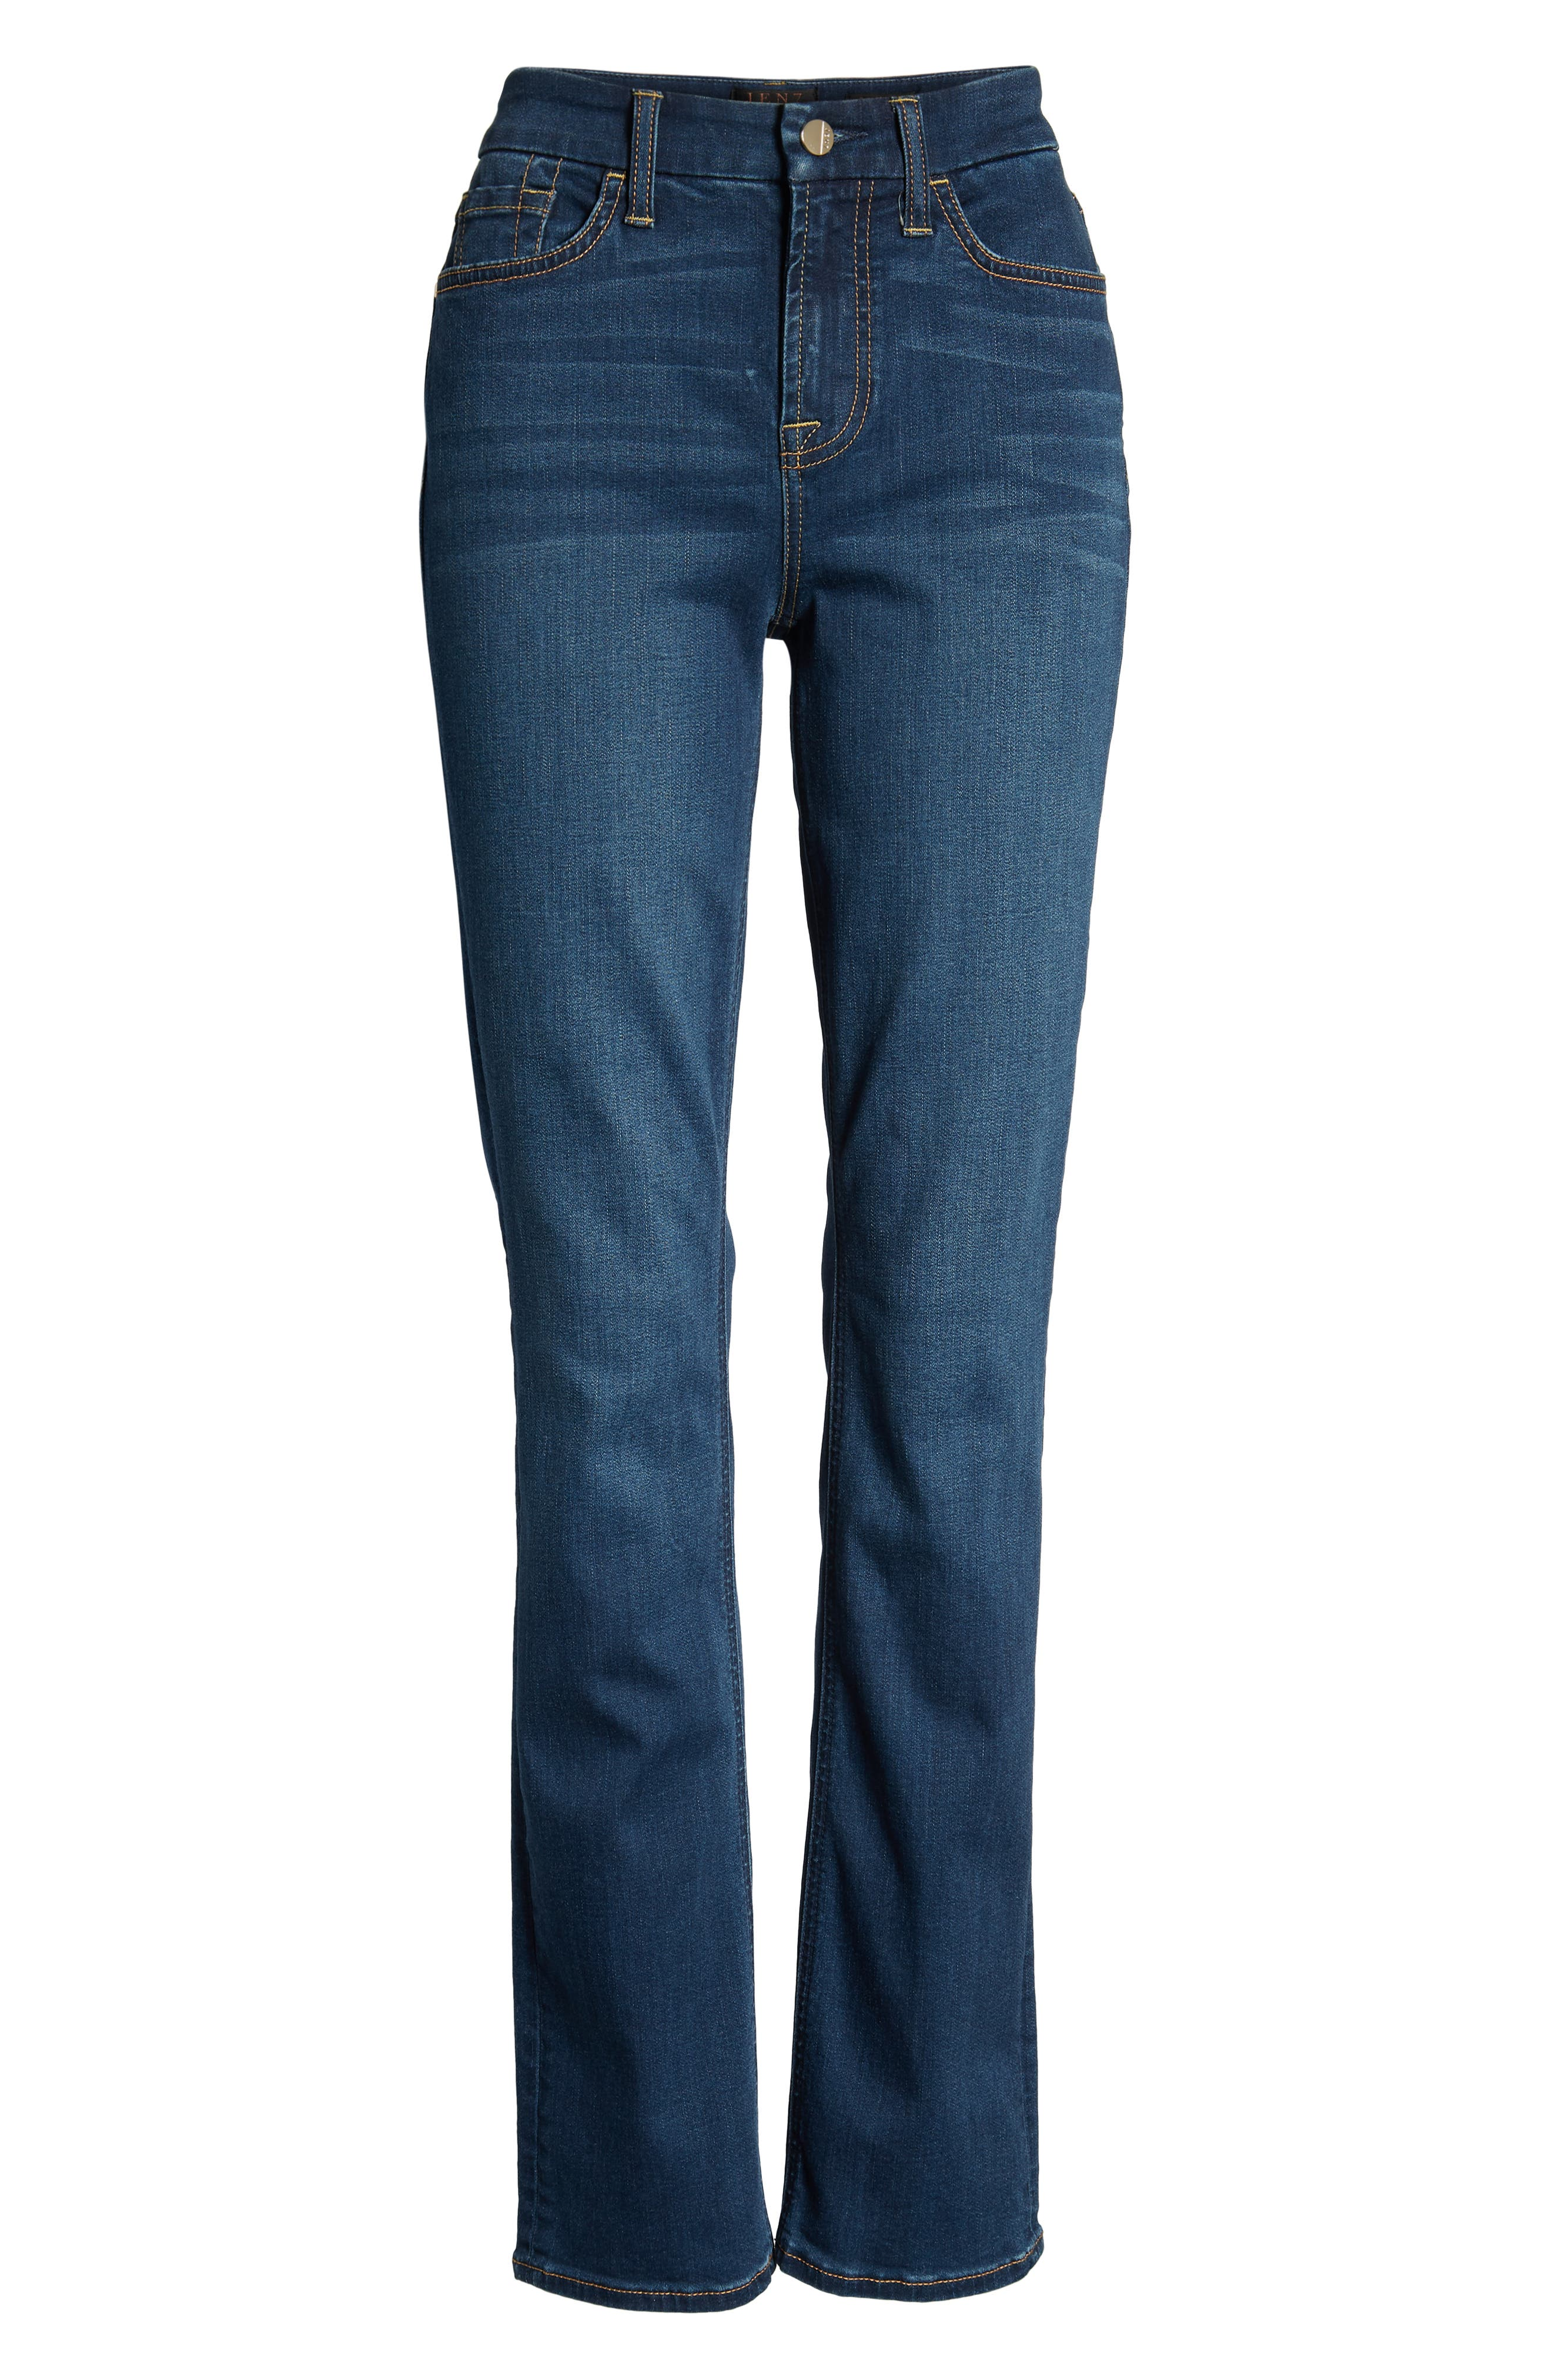 JEN7 BY 7 FOR ALL MANKIND, Slim Straight Leg Jeans, Alternate thumbnail 7, color, 404